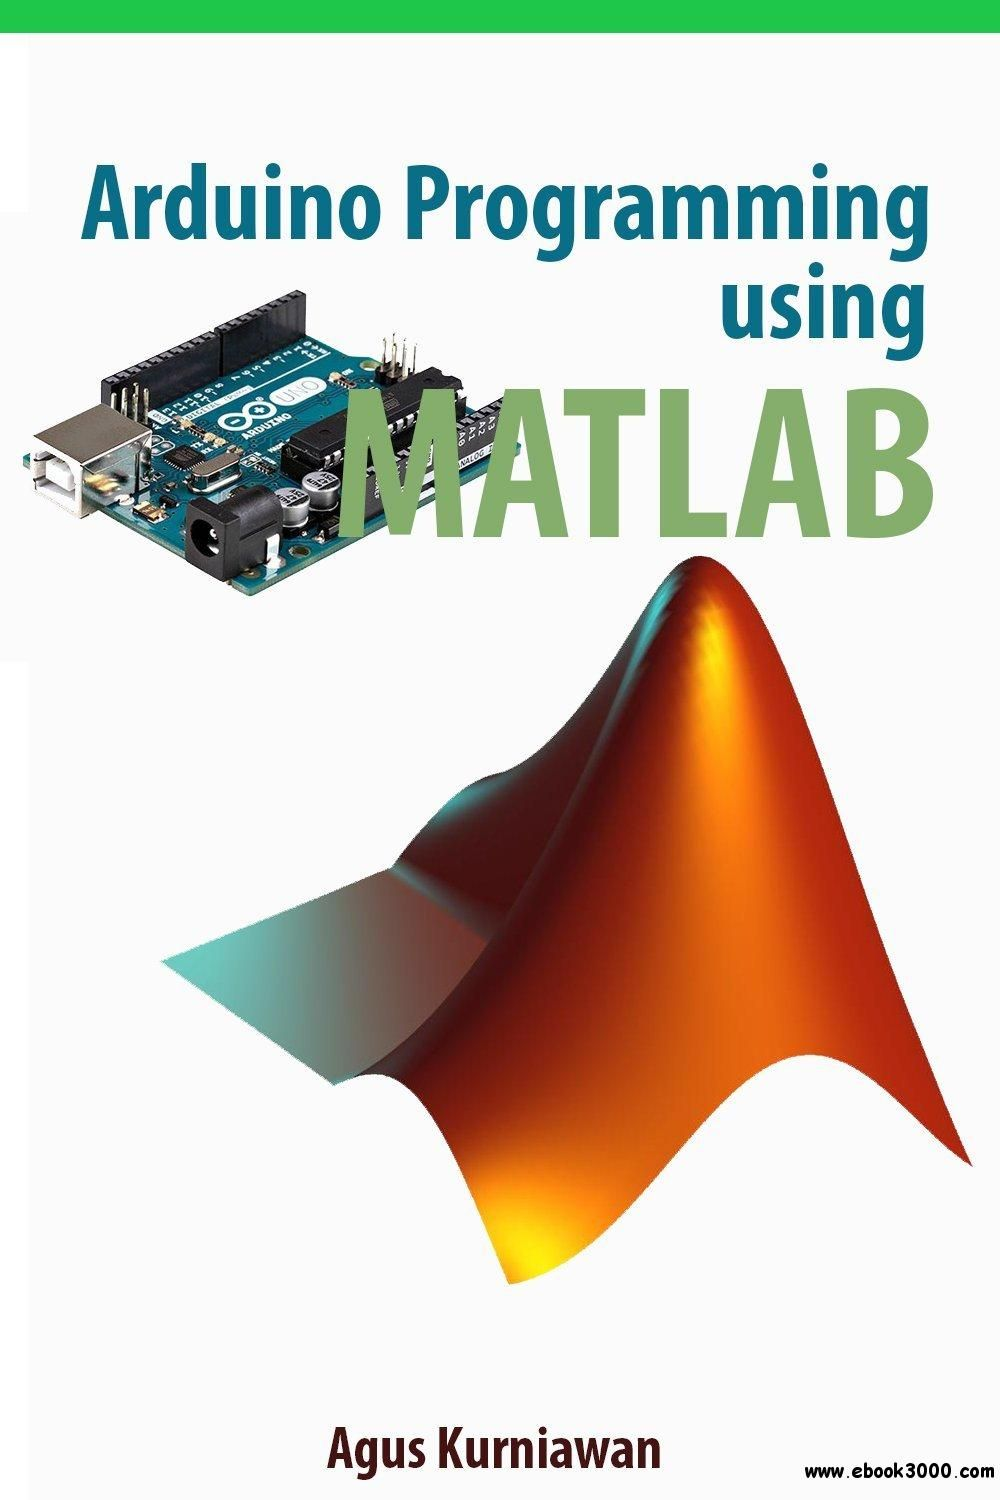 Arduino Programming using MATLAB - Free eBooks Download